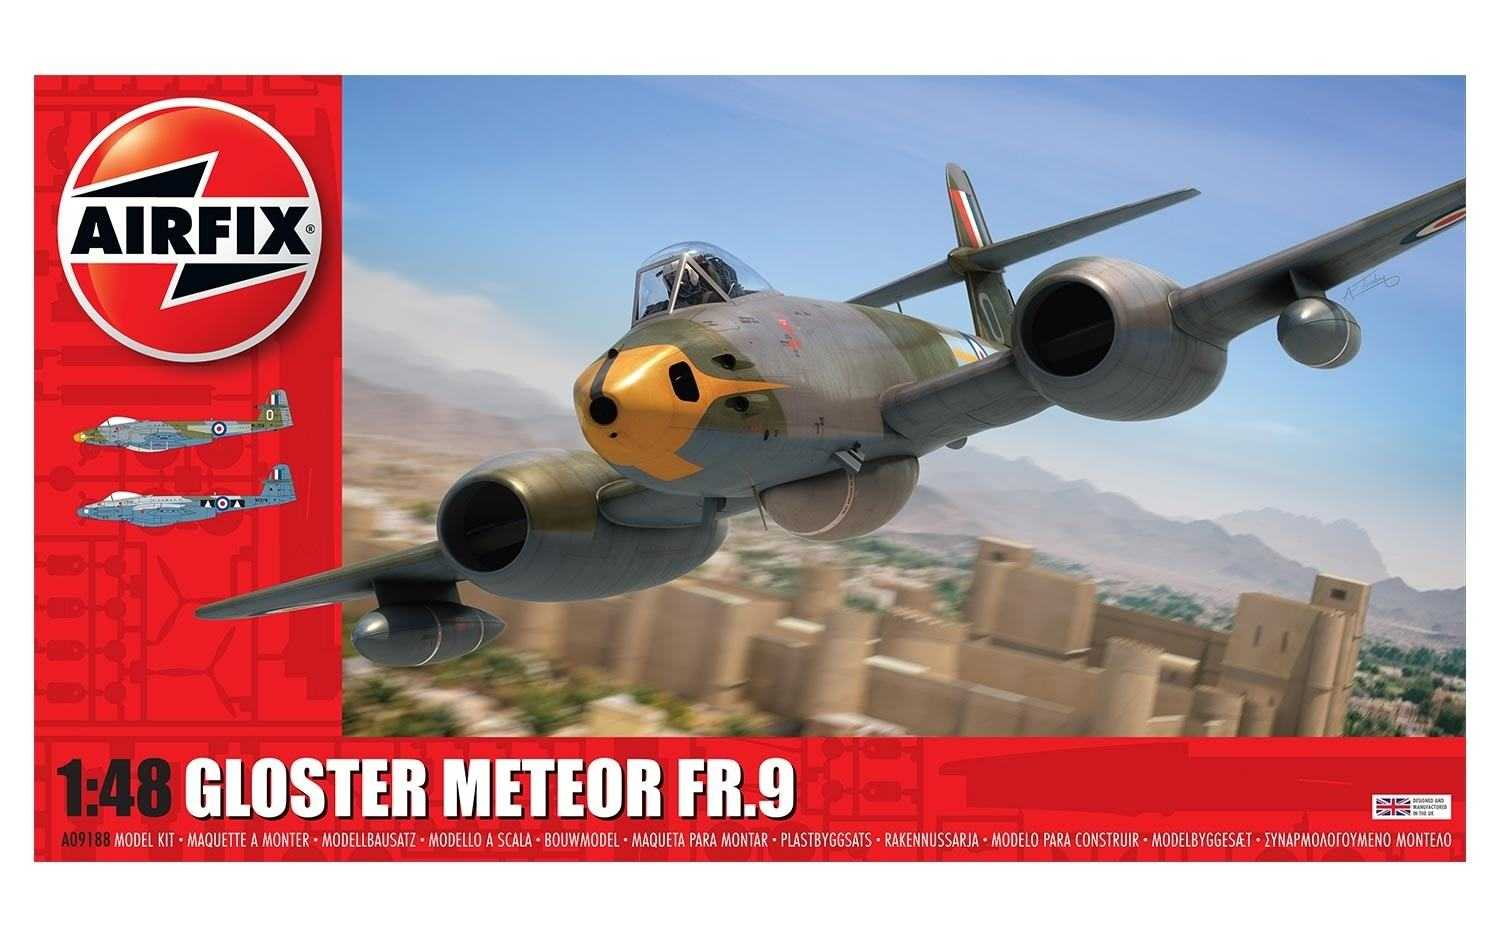 1:48 Gloster Meteor FR.9